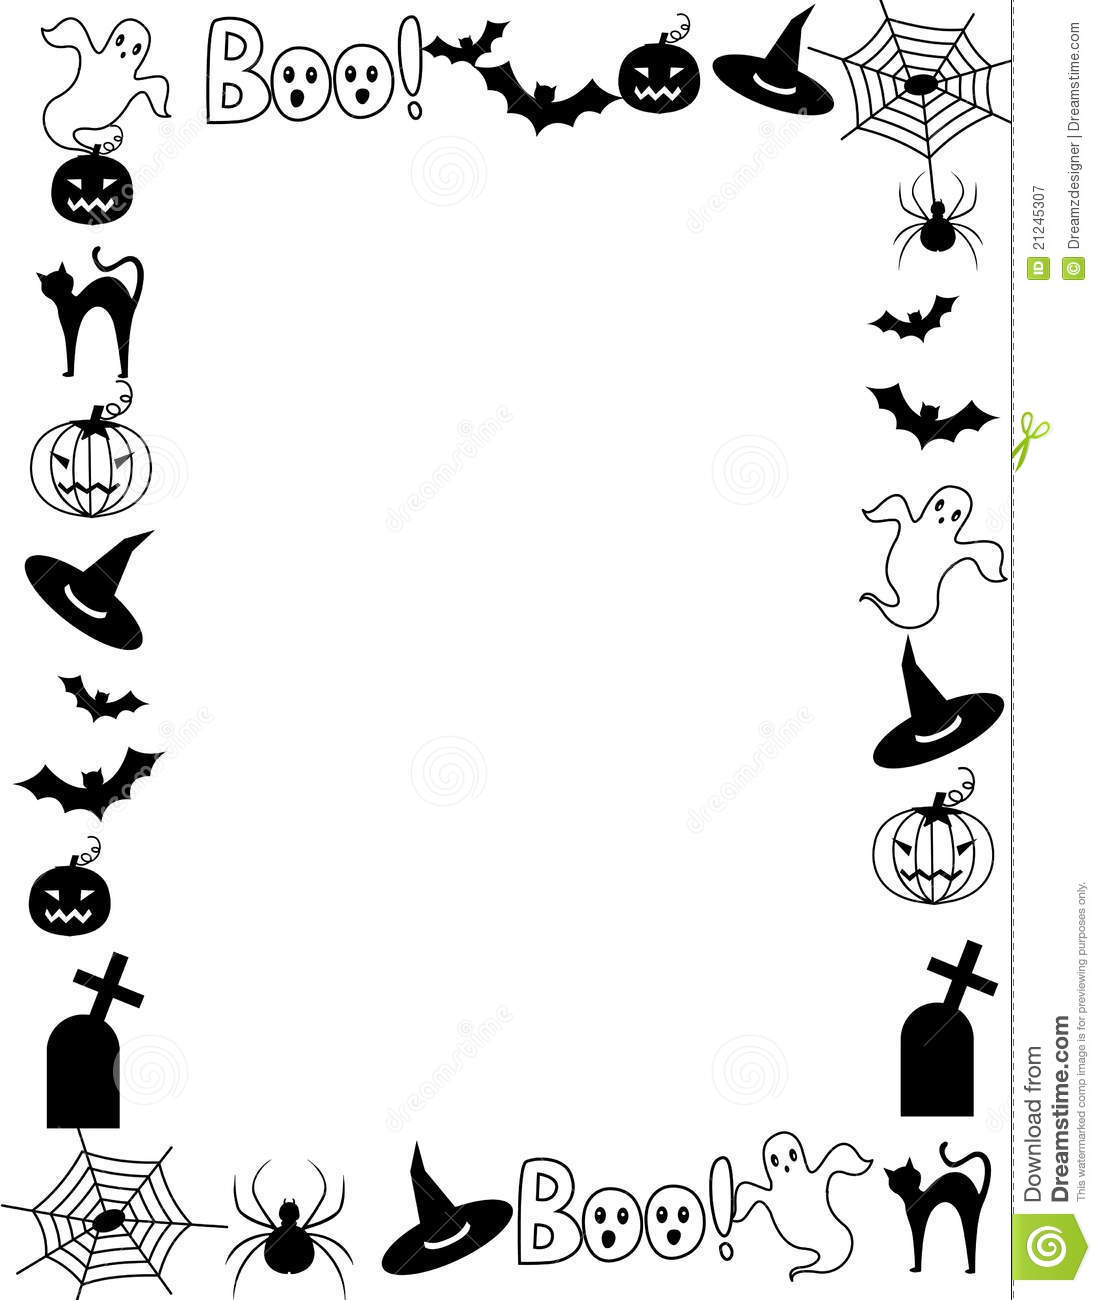 Cemetery clipart border.  collection of halloween